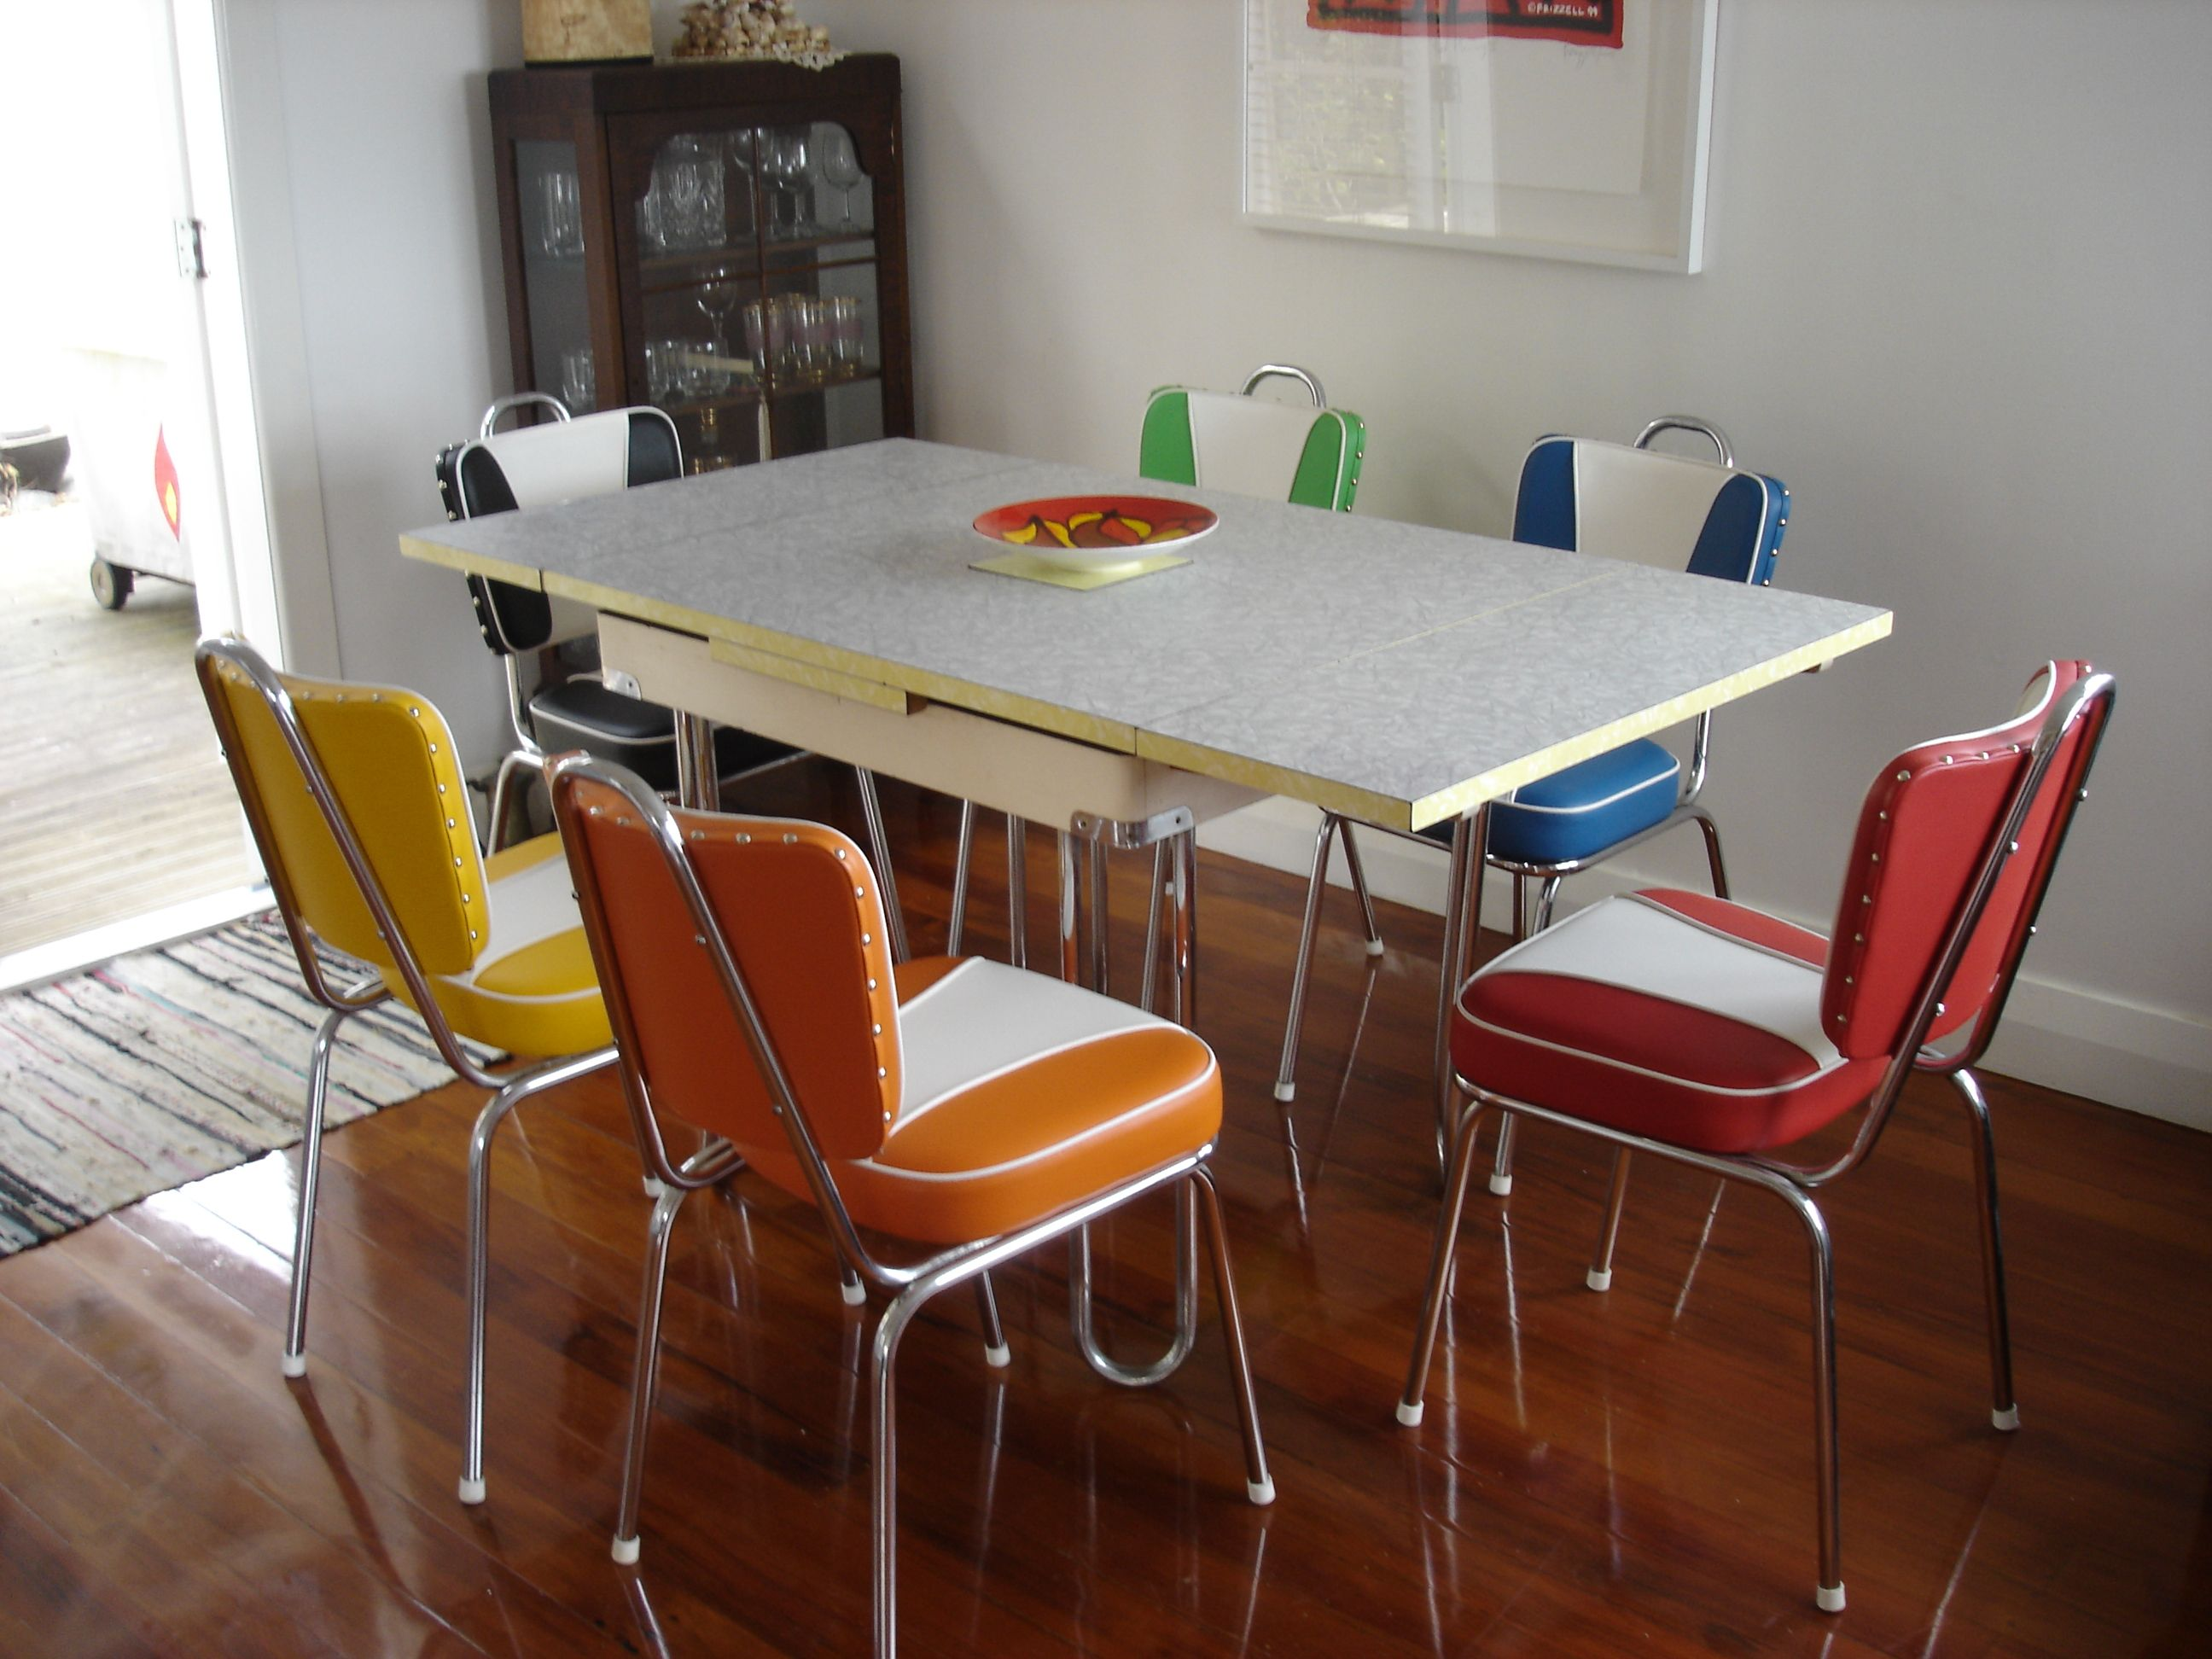 Retro Dining Table And Chairs  Love The Chairs  Retro Tables I'd Entrancing Retro Dining Room Tables Design Inspiration